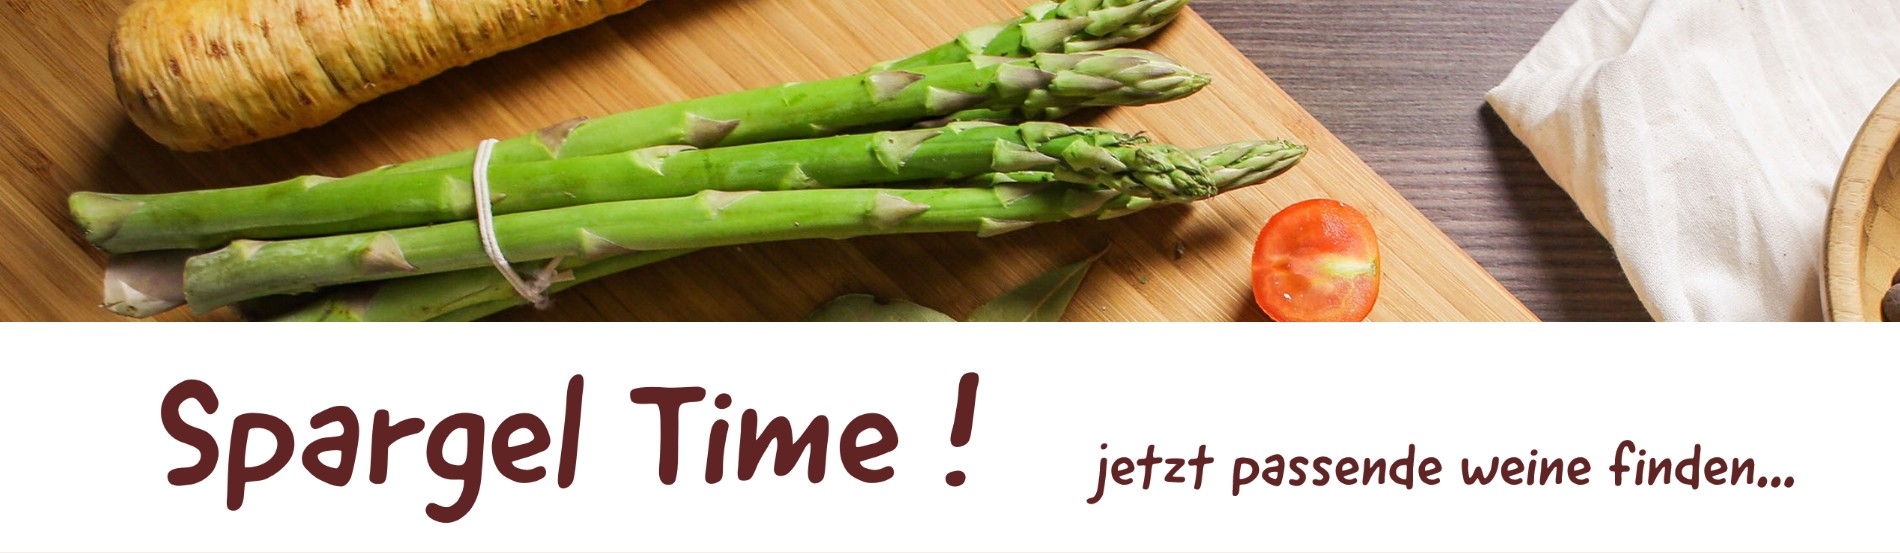 Spargel Time